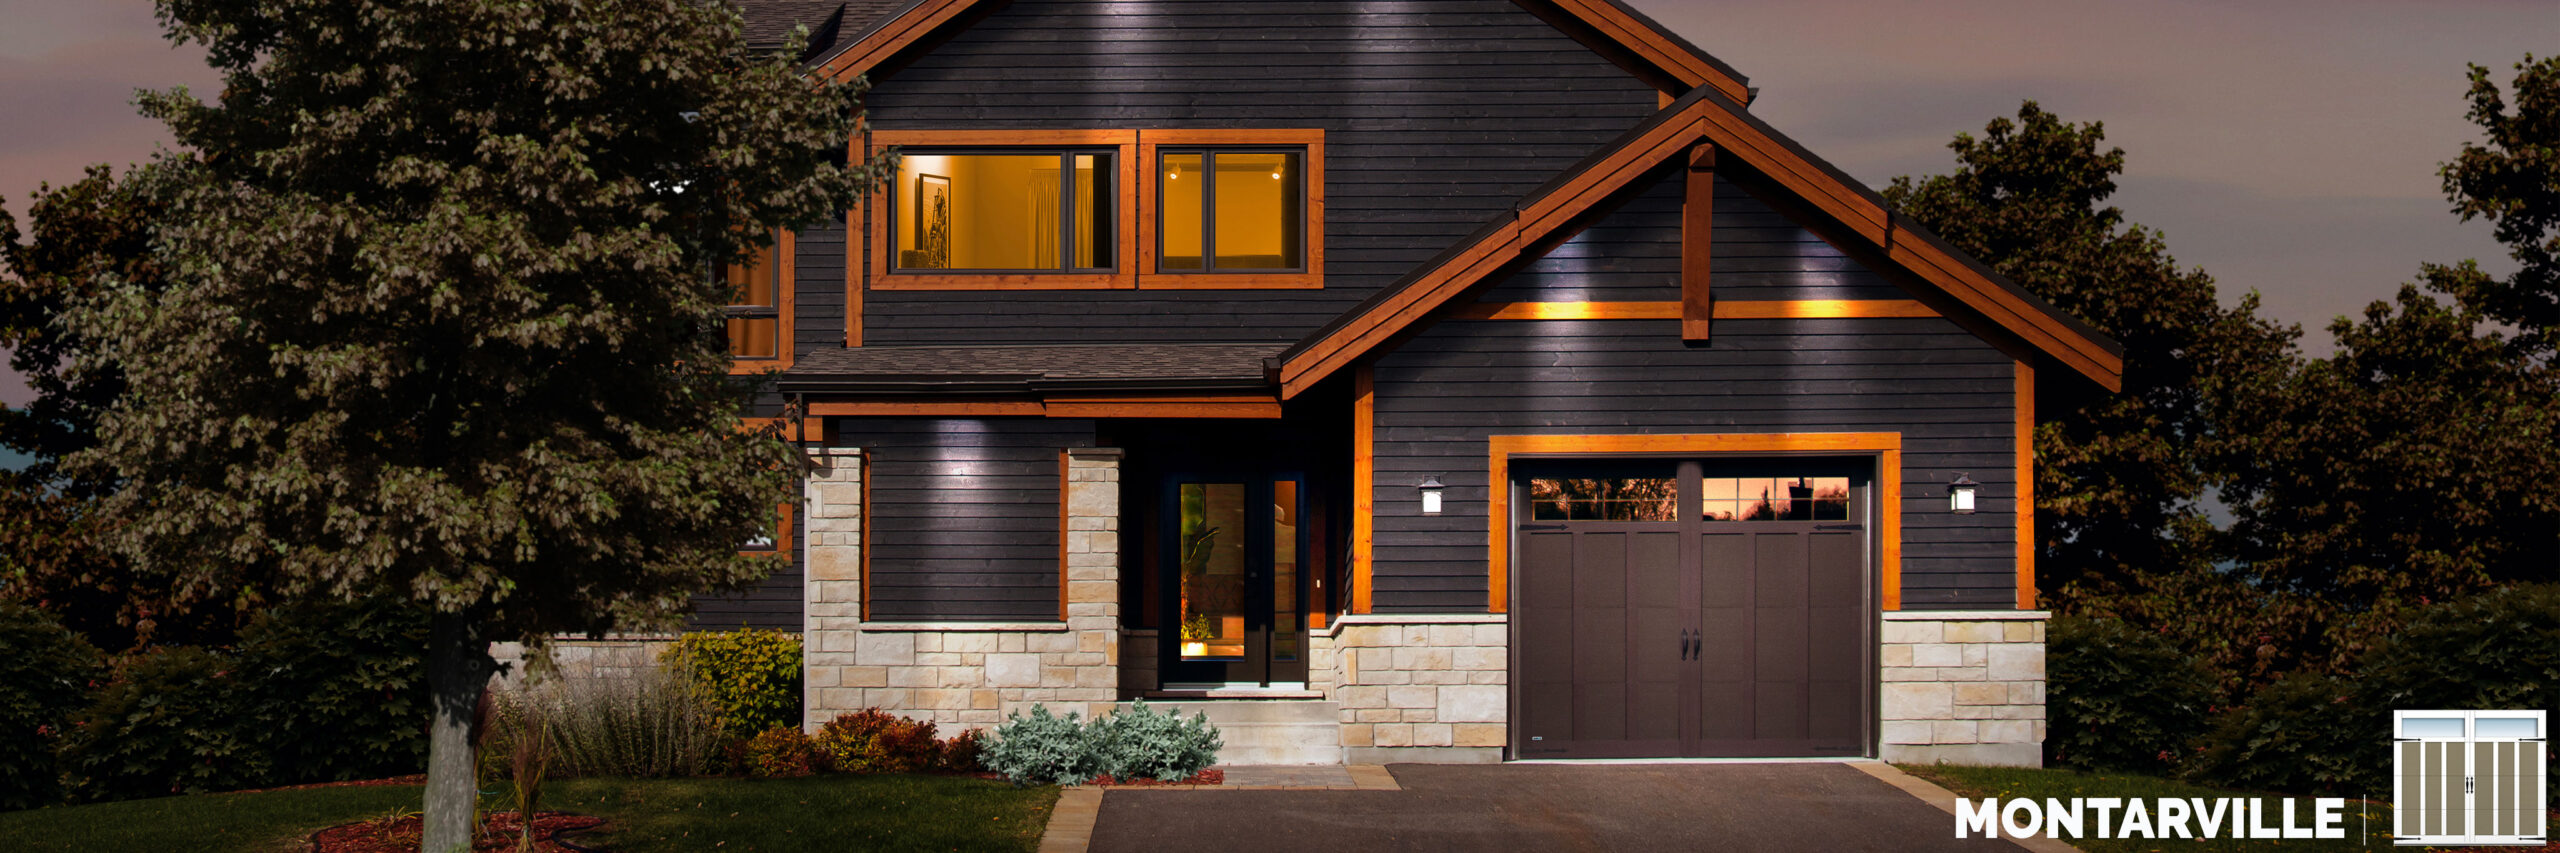 montarville carriage house style garage door by garex scaled